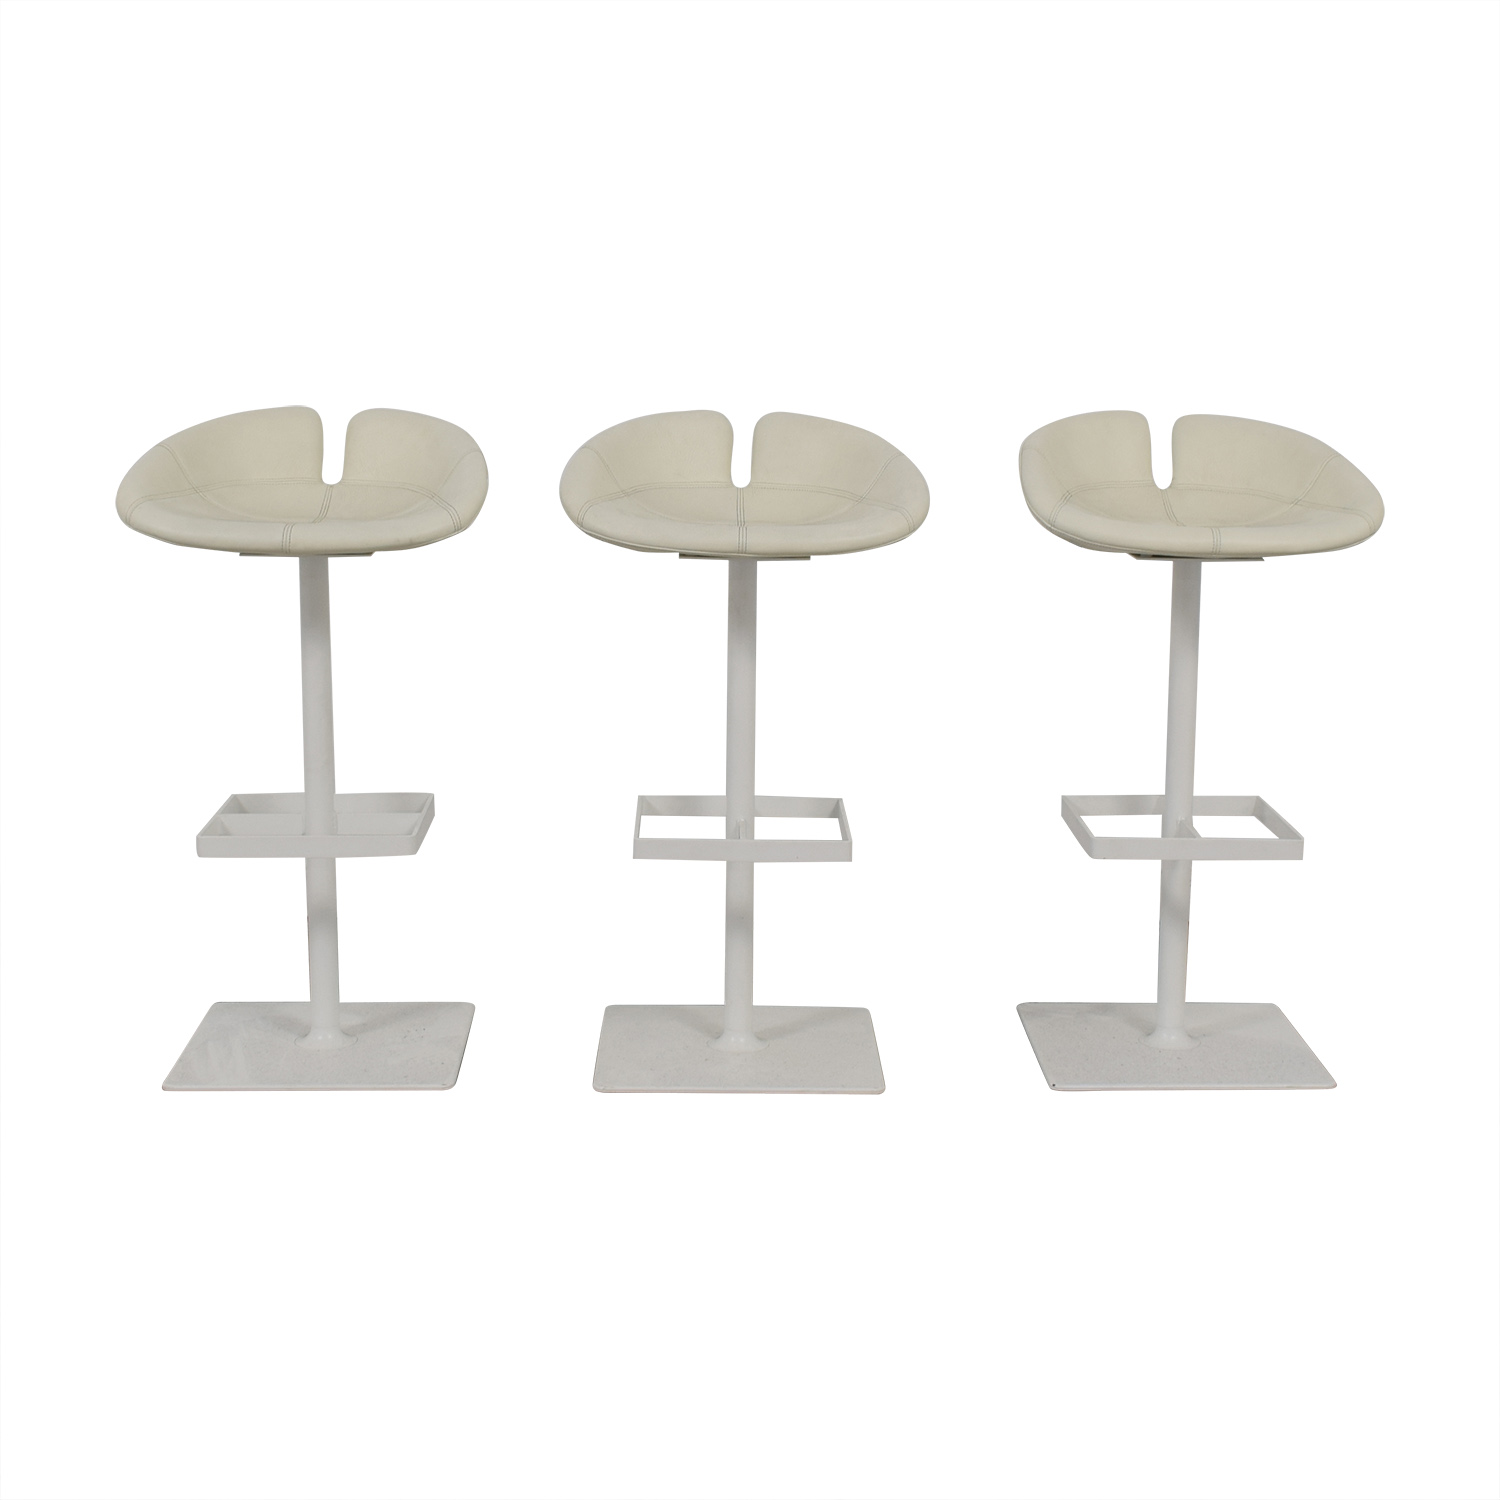 Moroso Moroso Fjord White Leather Barstools on sale